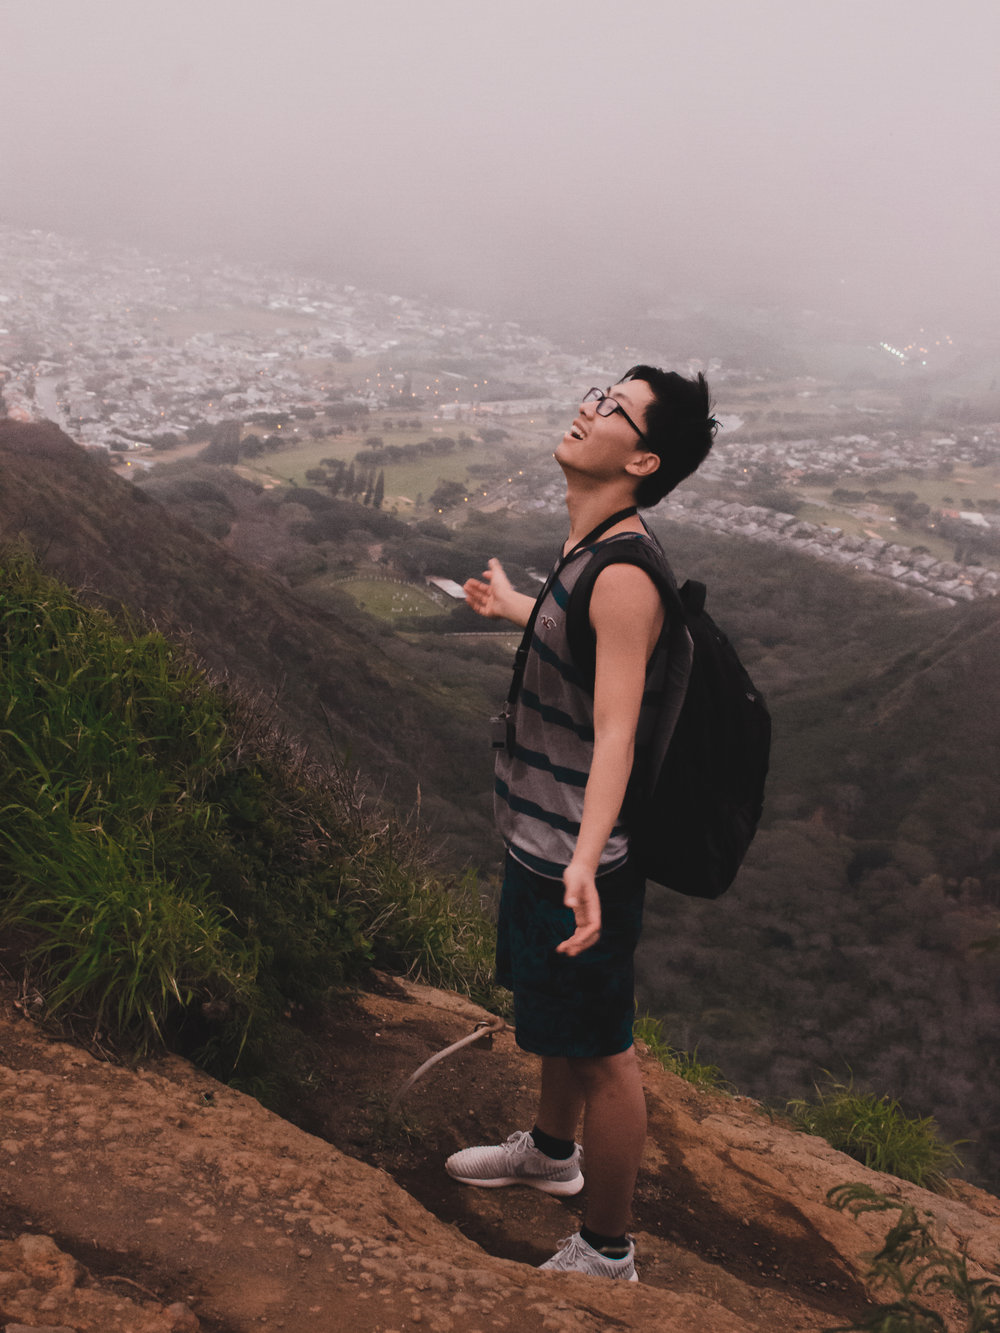 Yuting thrilled to have made it to the top of Koko Crater